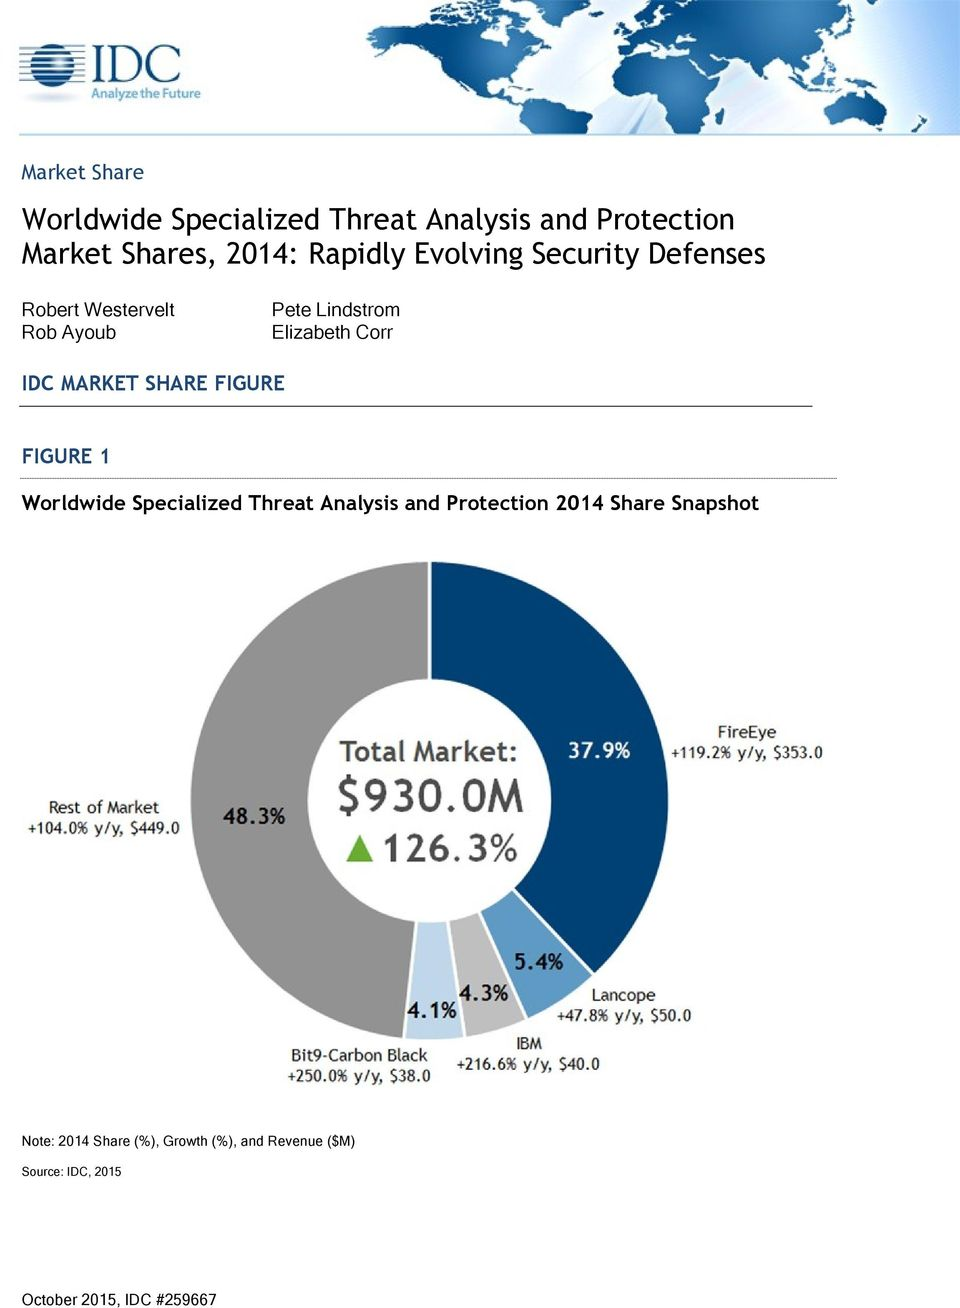 Worldwide Specialized Threat Analysis and Protection Market